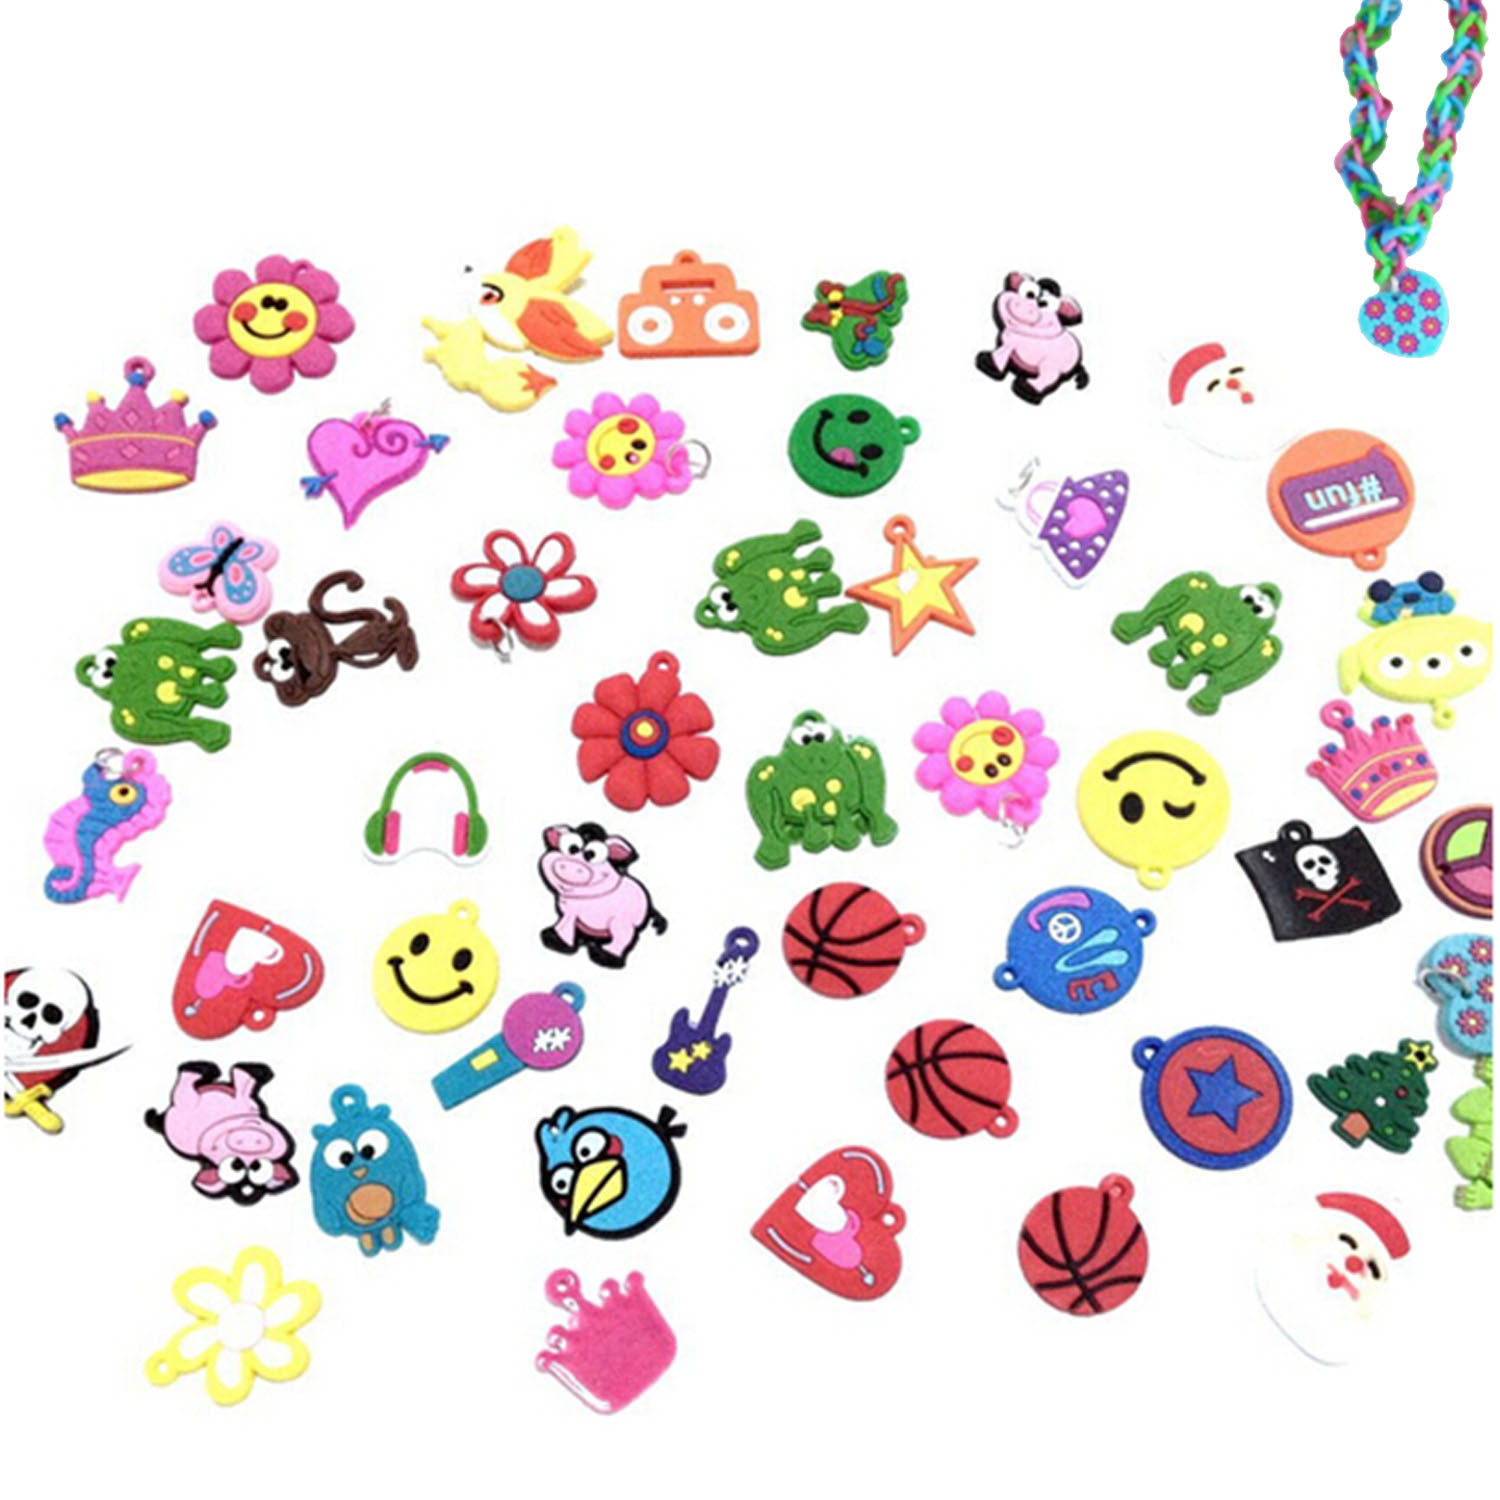 30PCS DIY Colorful Loom Rubber Bands Bracelets Jewelry Making Accessories For Kids Girls Charms Pendants Animal Flower Beads Toy